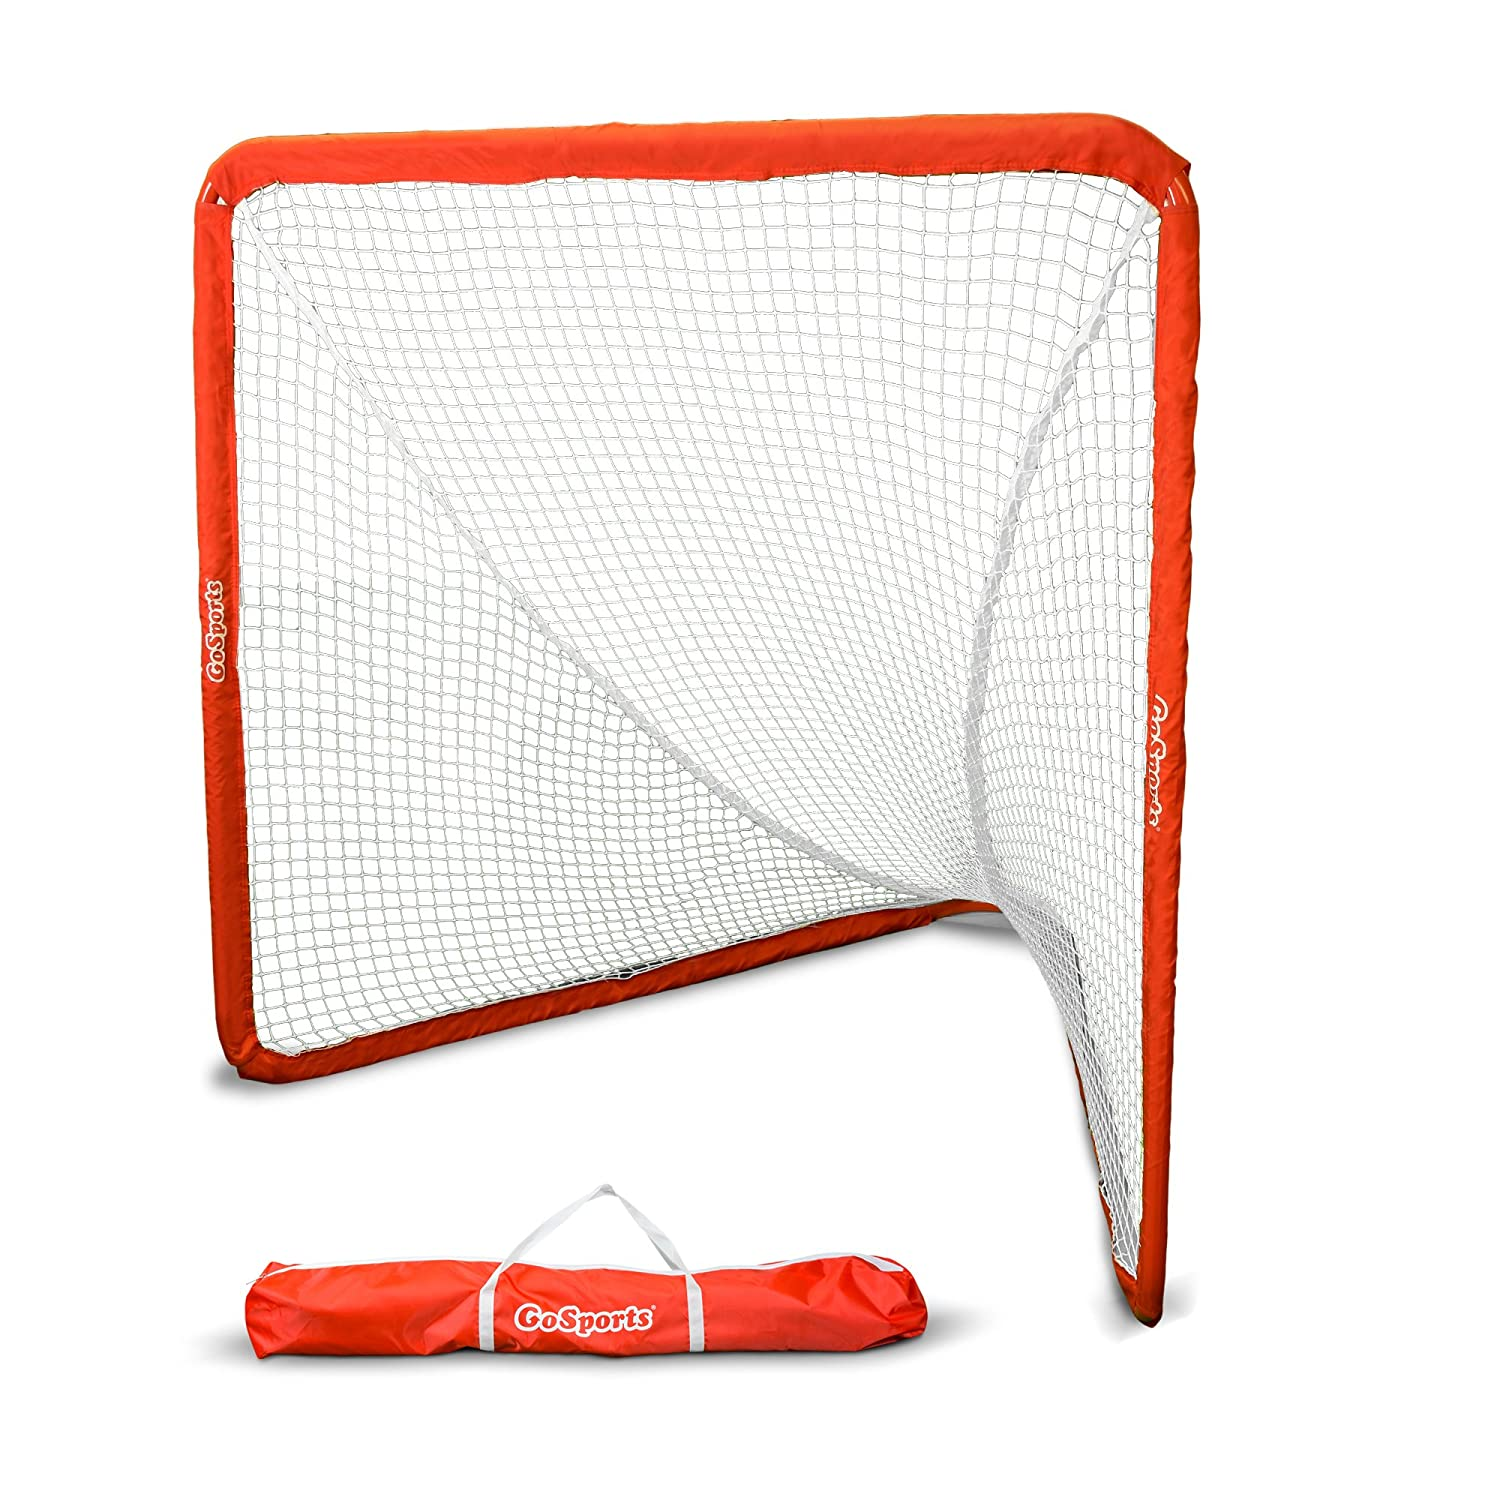 GoSports Regulation 6' x 6' Lacrosse Net with Steel Frame | The Only Truly Portable Lacrosse Goal for Kids and Adults | Backyard Setup in Minutes